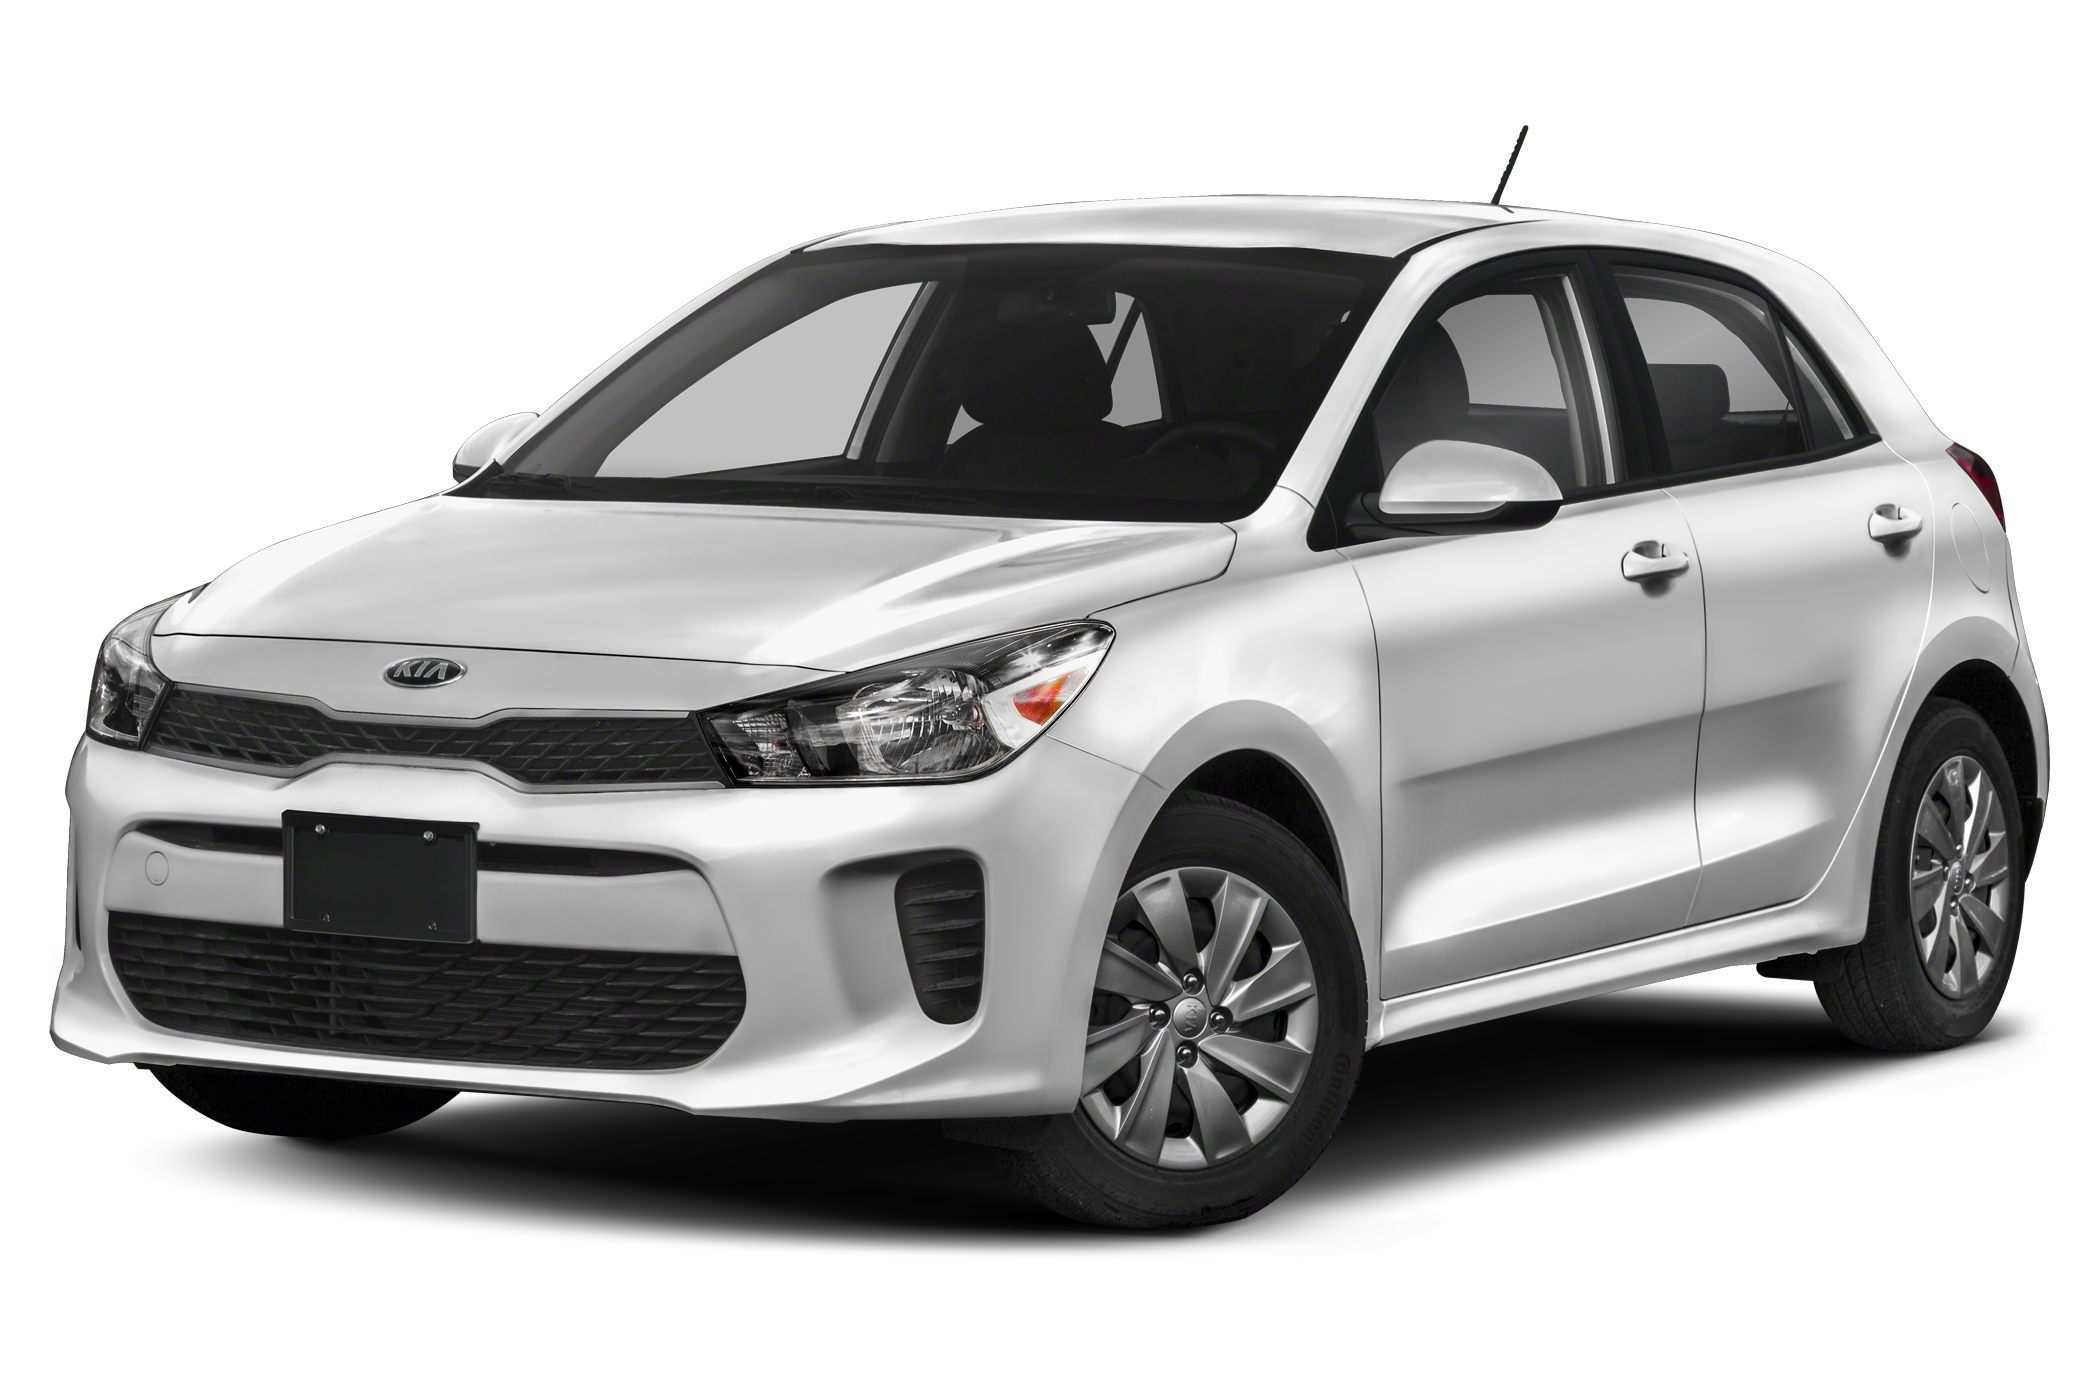 85 The Best Kia Rio 2019 Review